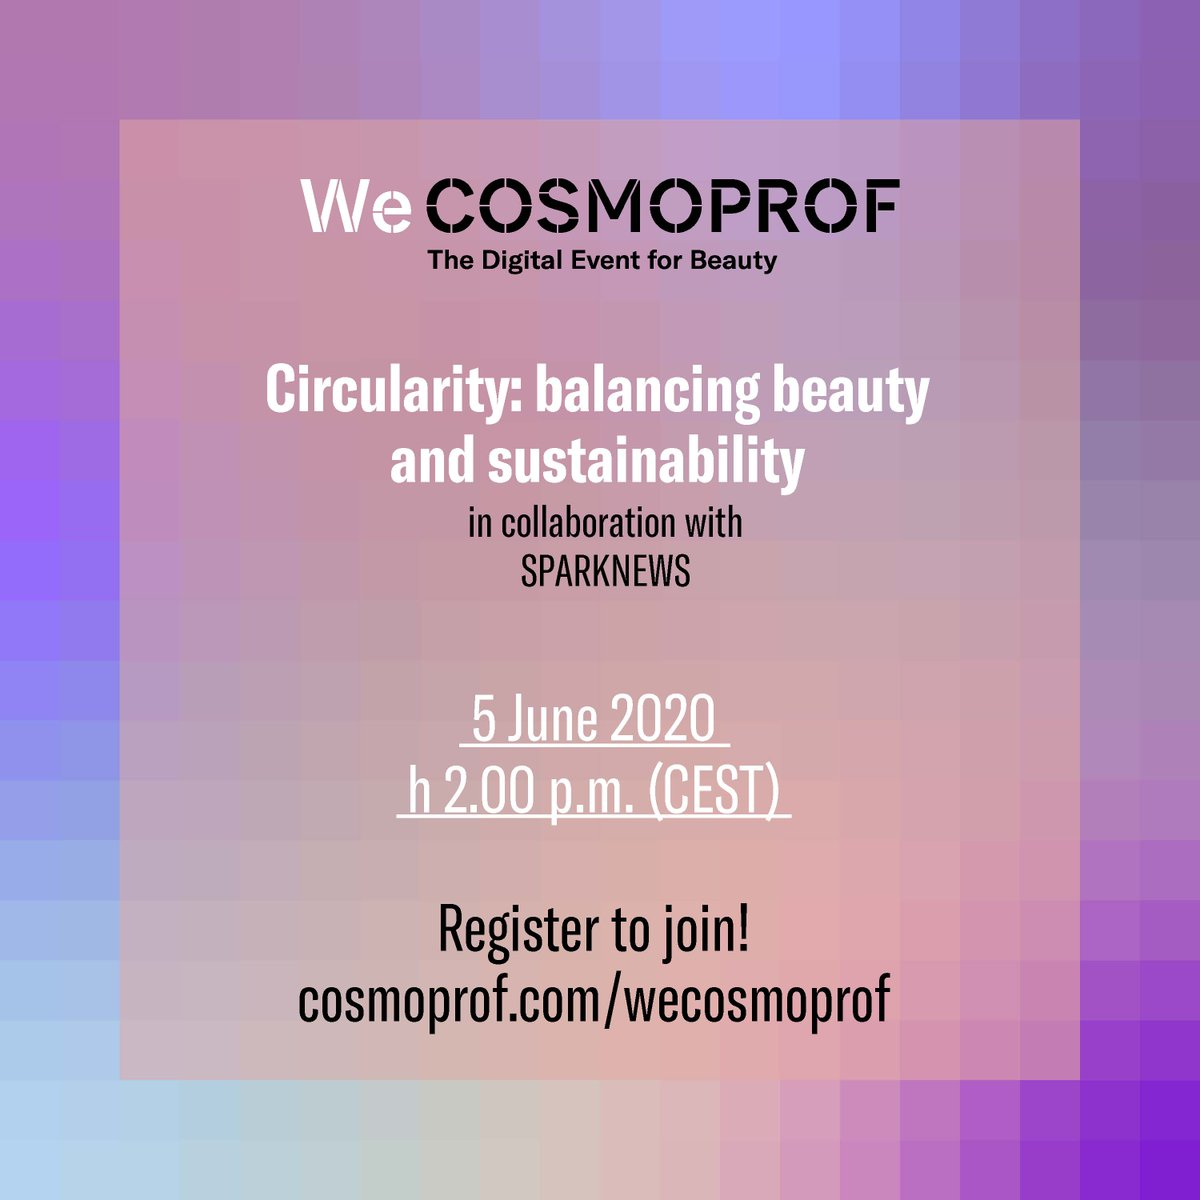 We'll be at #CosmoProf on 5 June, 14.00 hrs CET. Join our VP, Christina Raab online for: Circularity: Balancing Beauty and Sustainability We're embracing a #CircularEconomy & reducing our dependence on finite products, learn how #beauty companies do it: